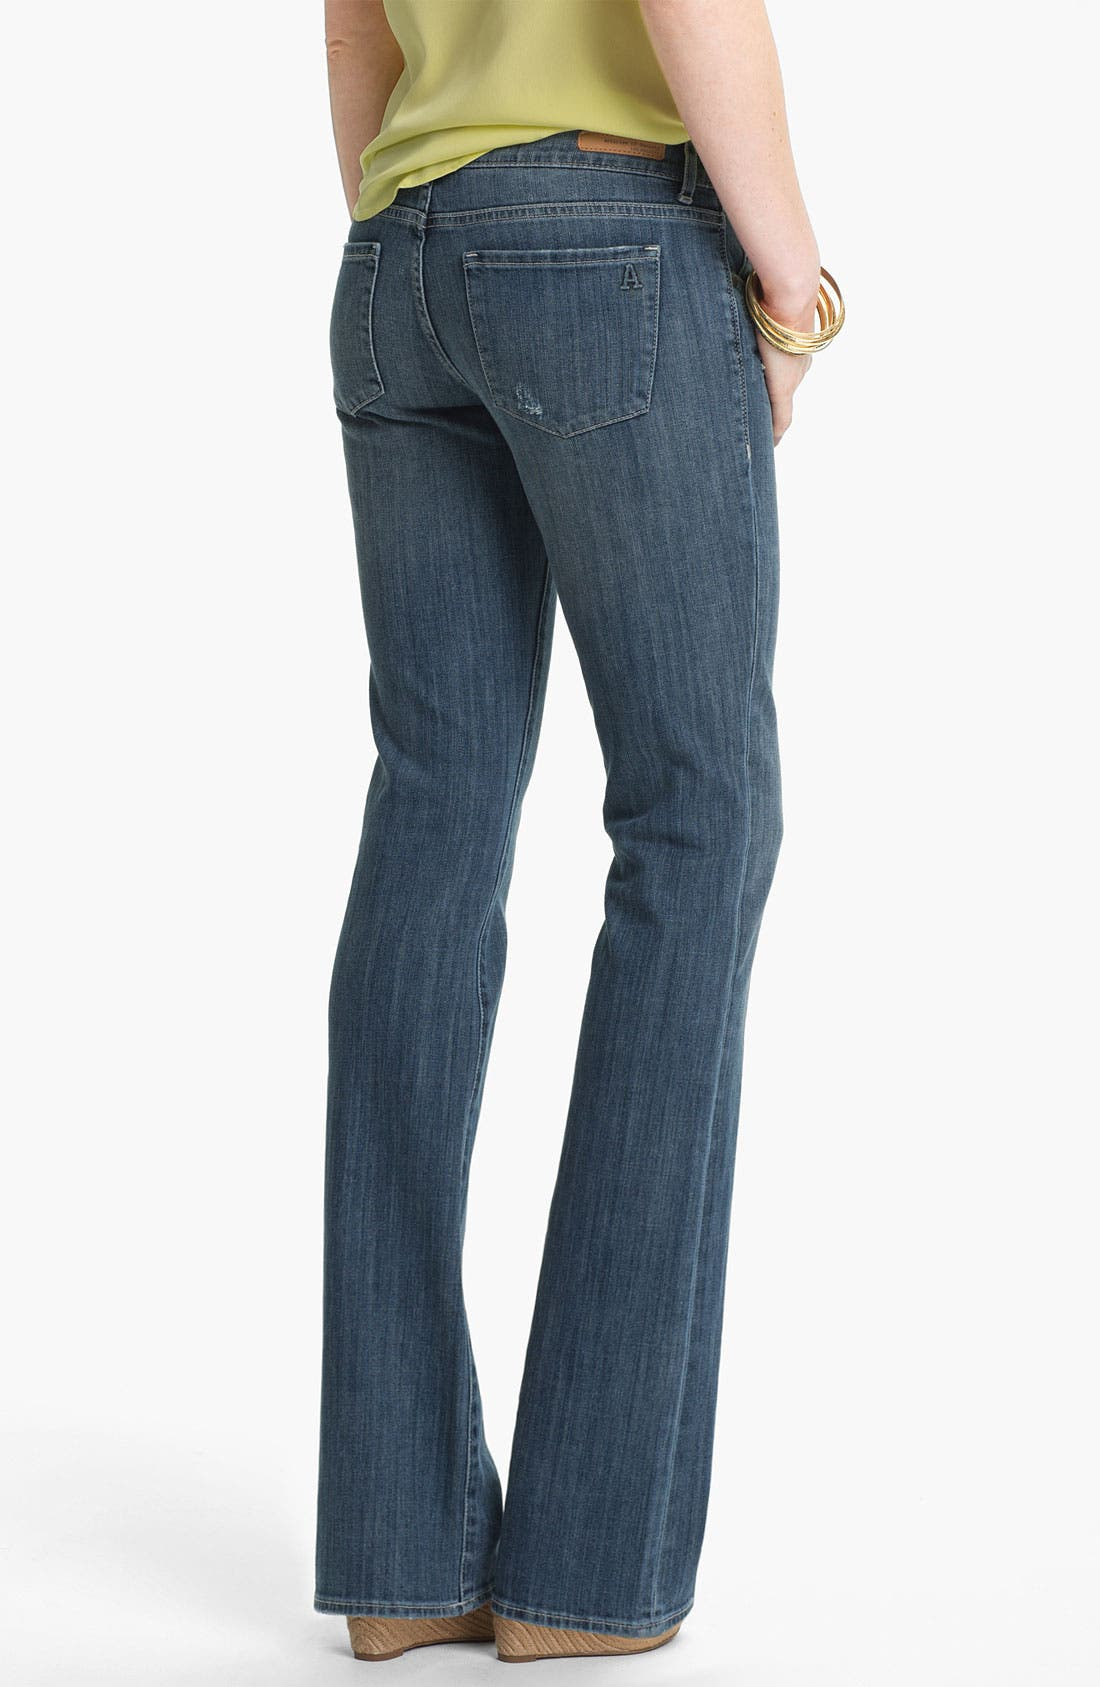 Alternate Image 2  - Articles of Society 'Kendra' Bootcut Jeans (Worn) (Juniors)